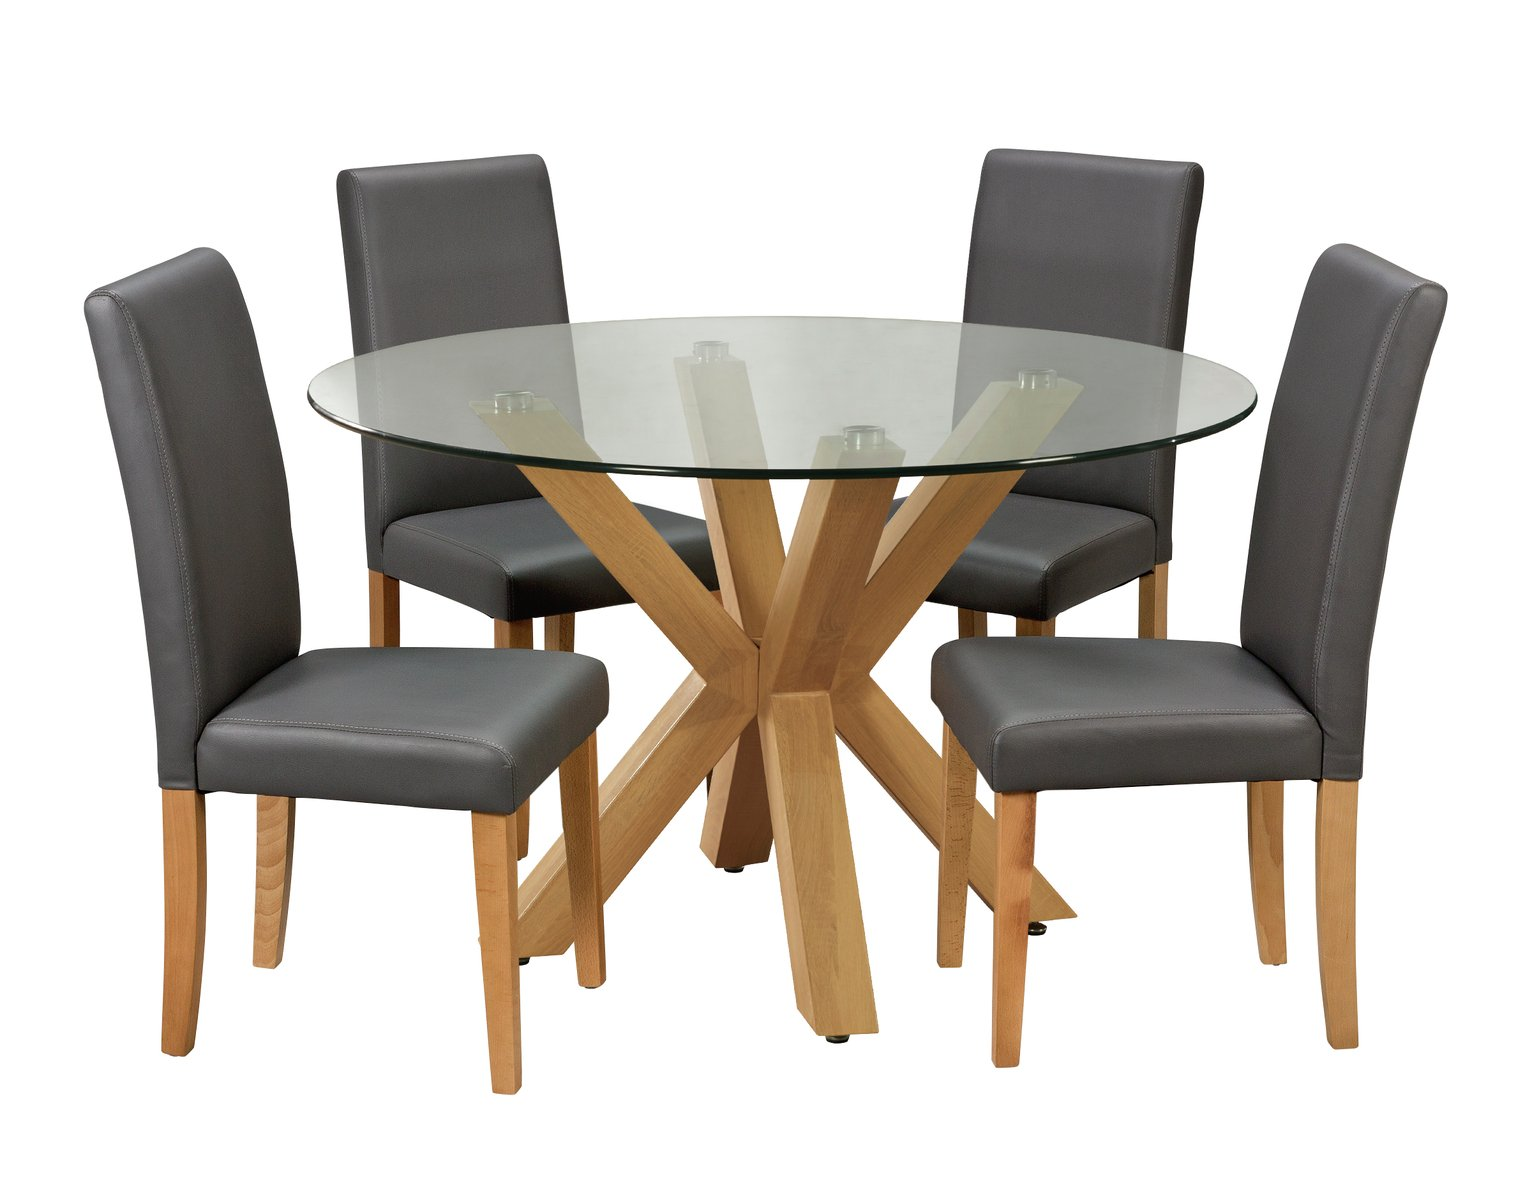 Argos Home Alden Round Glass Table U0026 4 Chairs   Charcoal854/6140